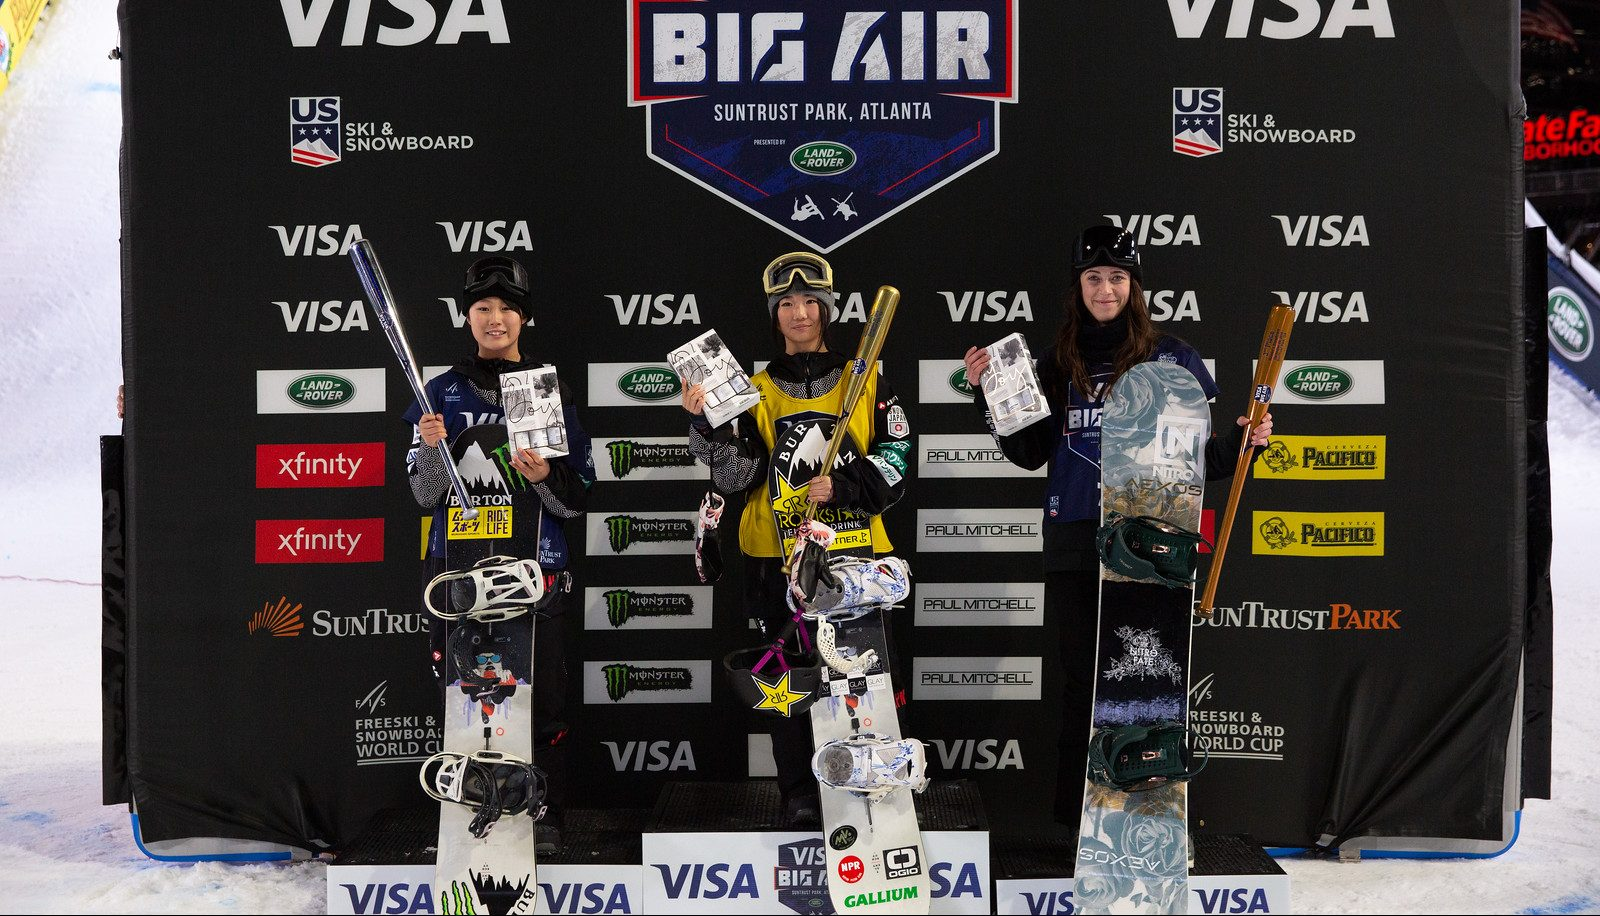 Snowboard Finals 2019 Visa Big Air presented by Land Rover at SunTrust Park, Atlanta. Brooke Voigt won bronze in the women's competition on December 20th, 2019. Photo: U.S. Ski & Snowboard.